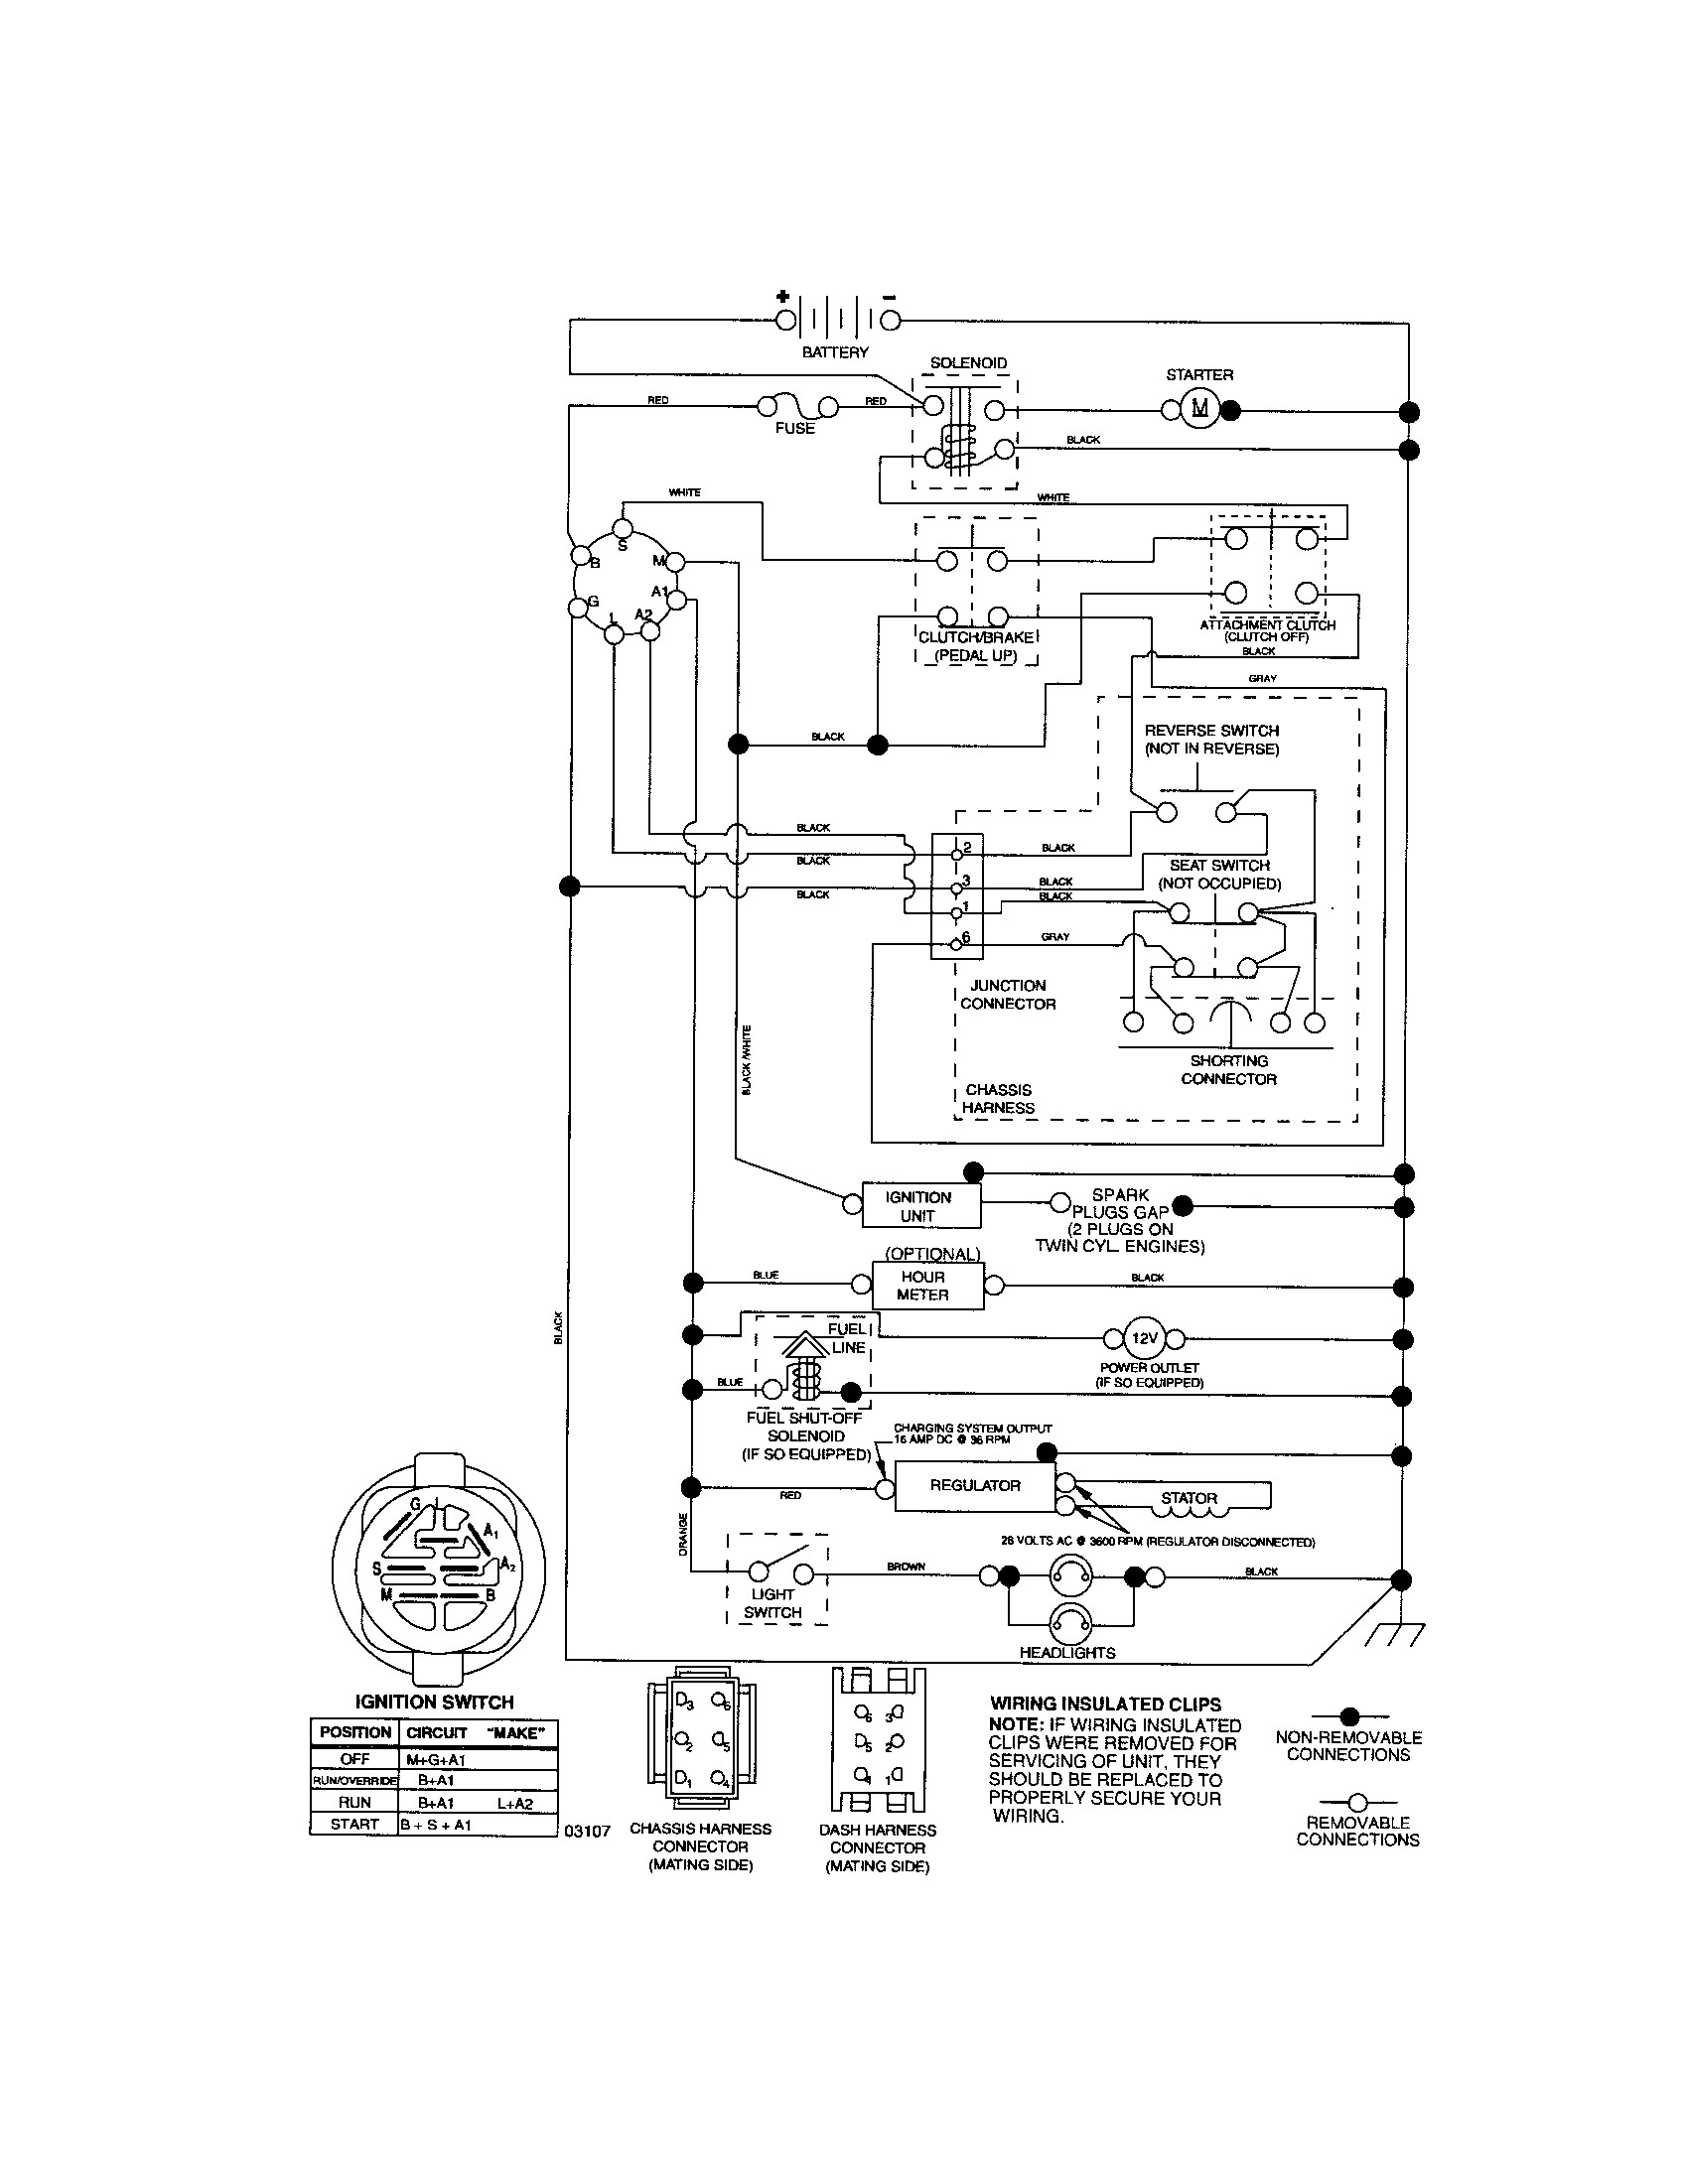 Wiring Diagram 318 John Deere Om 0281] Murray Riding Lawn Mower Wiring Diagram Free Diagram Of Wiring Diagram 318 John Deere